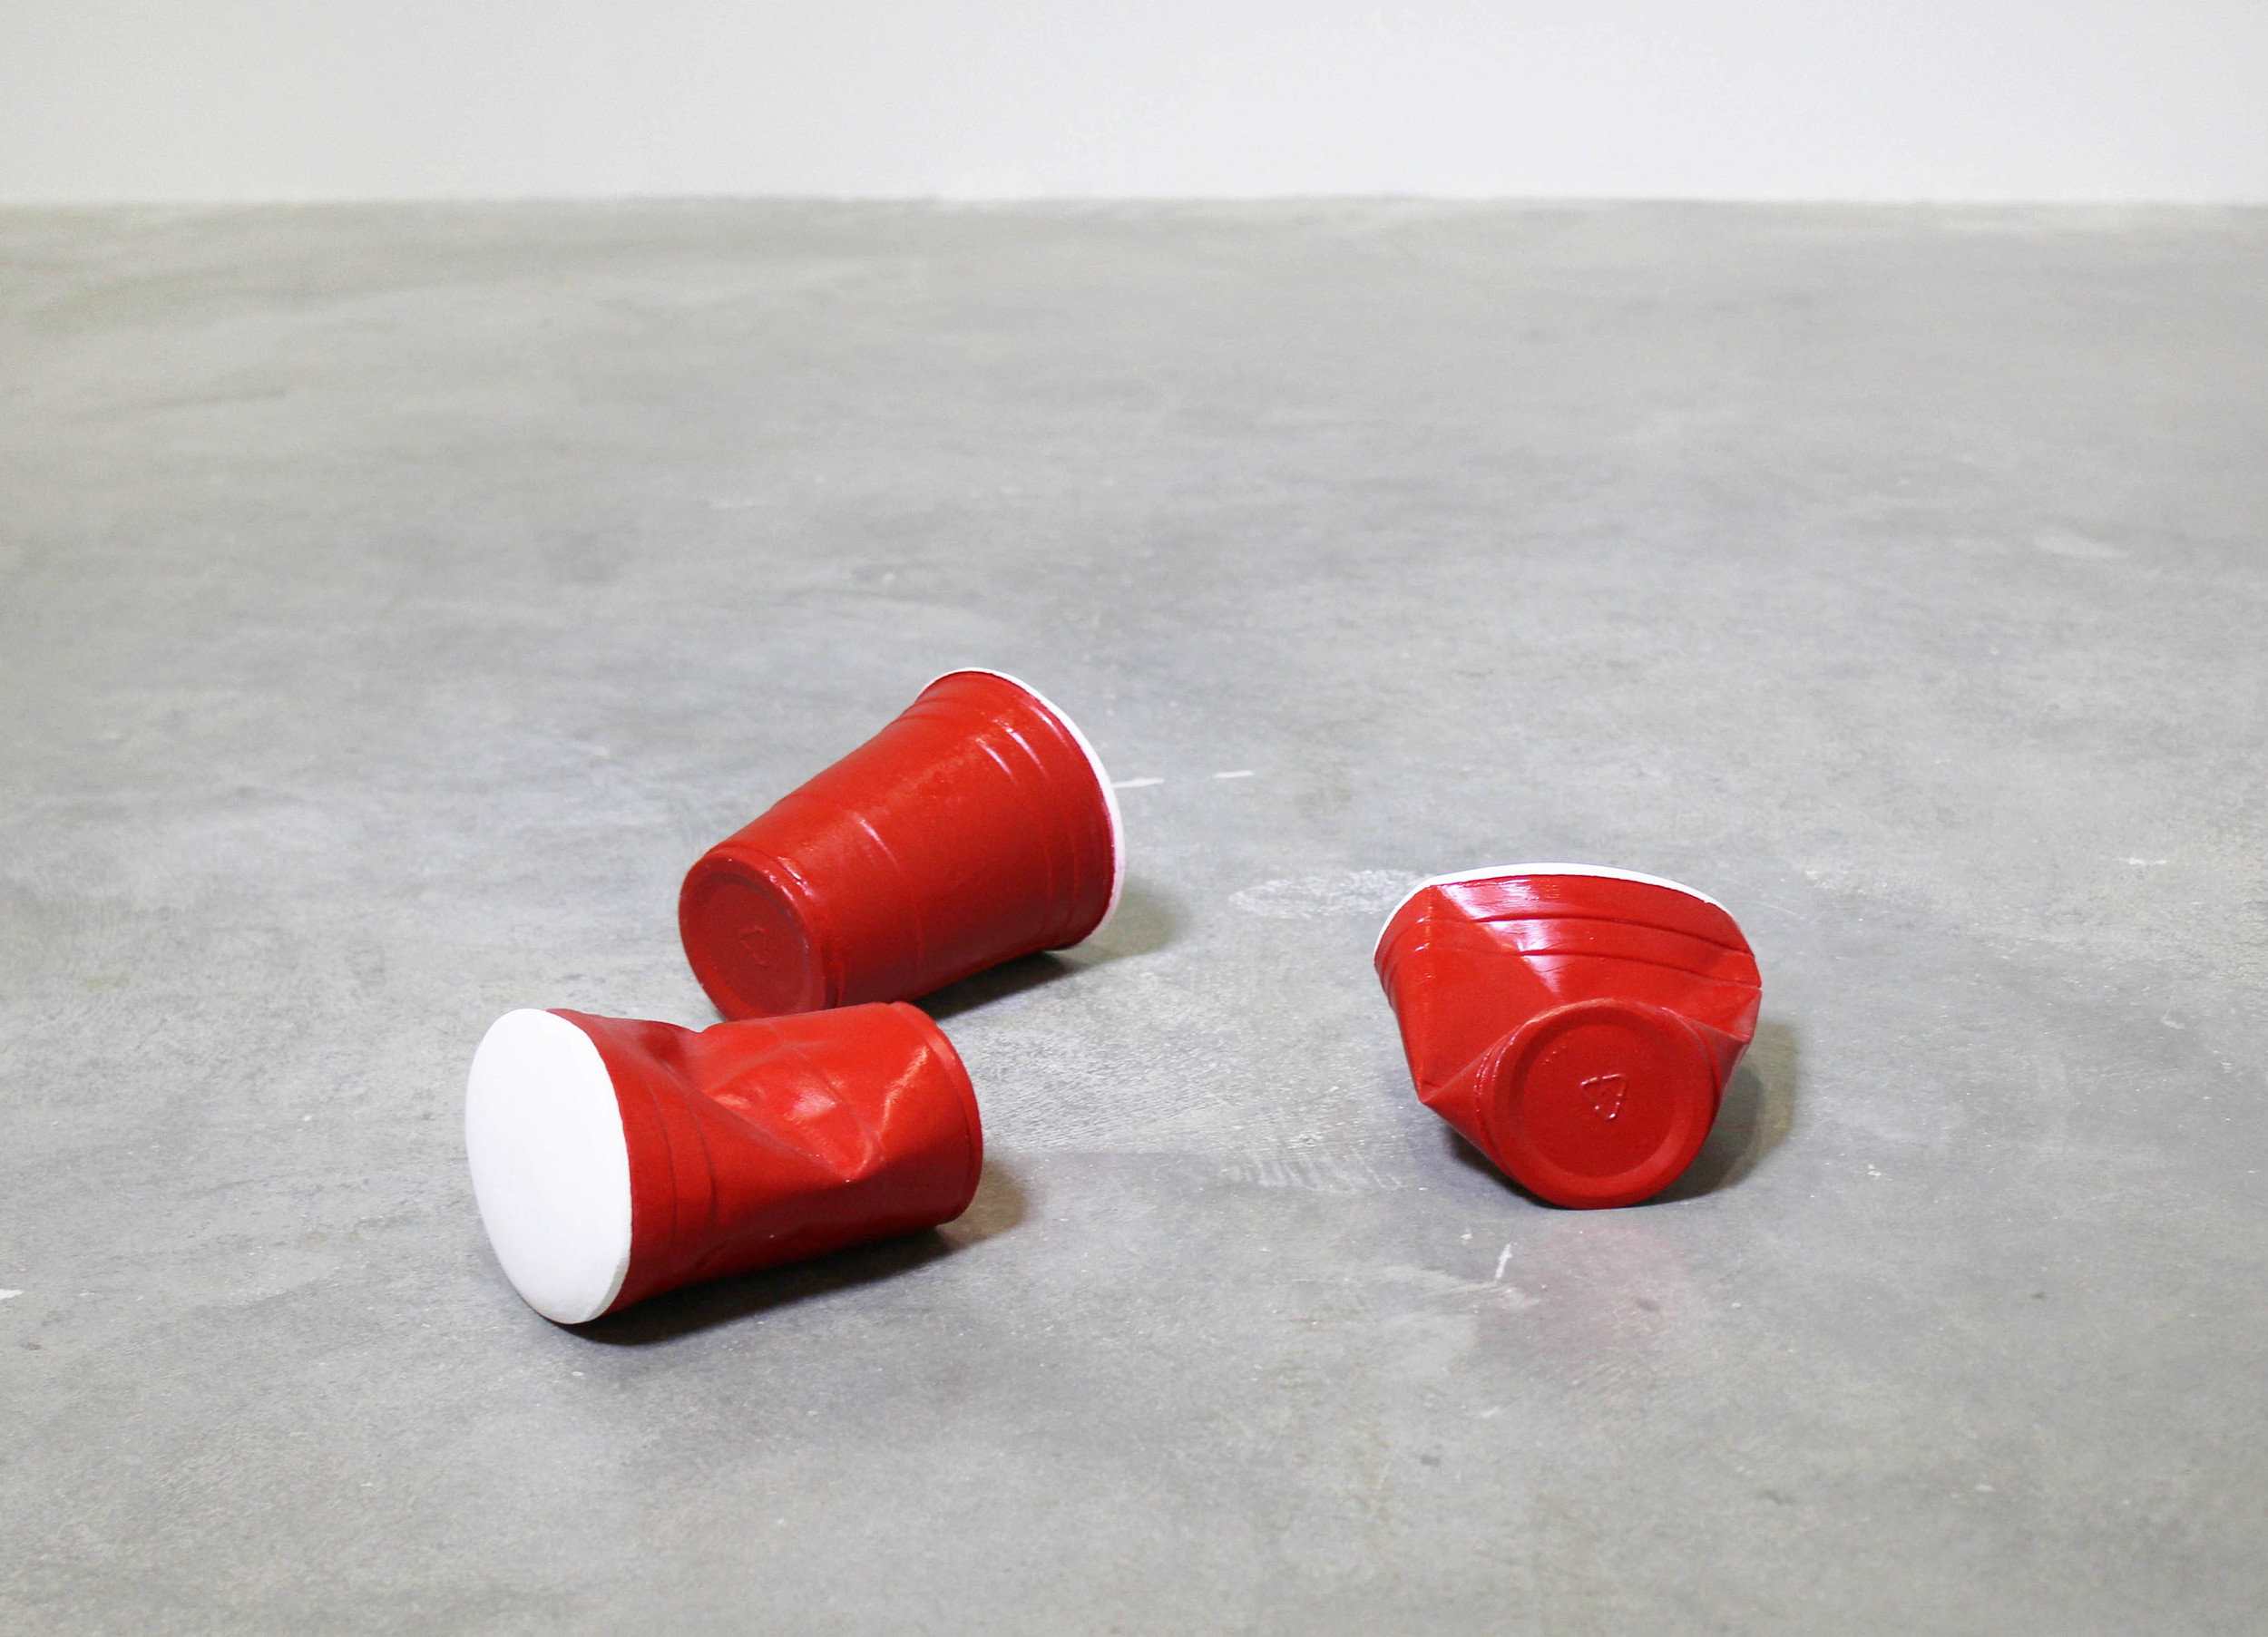 Untitled (Red Solo Cups), 2016